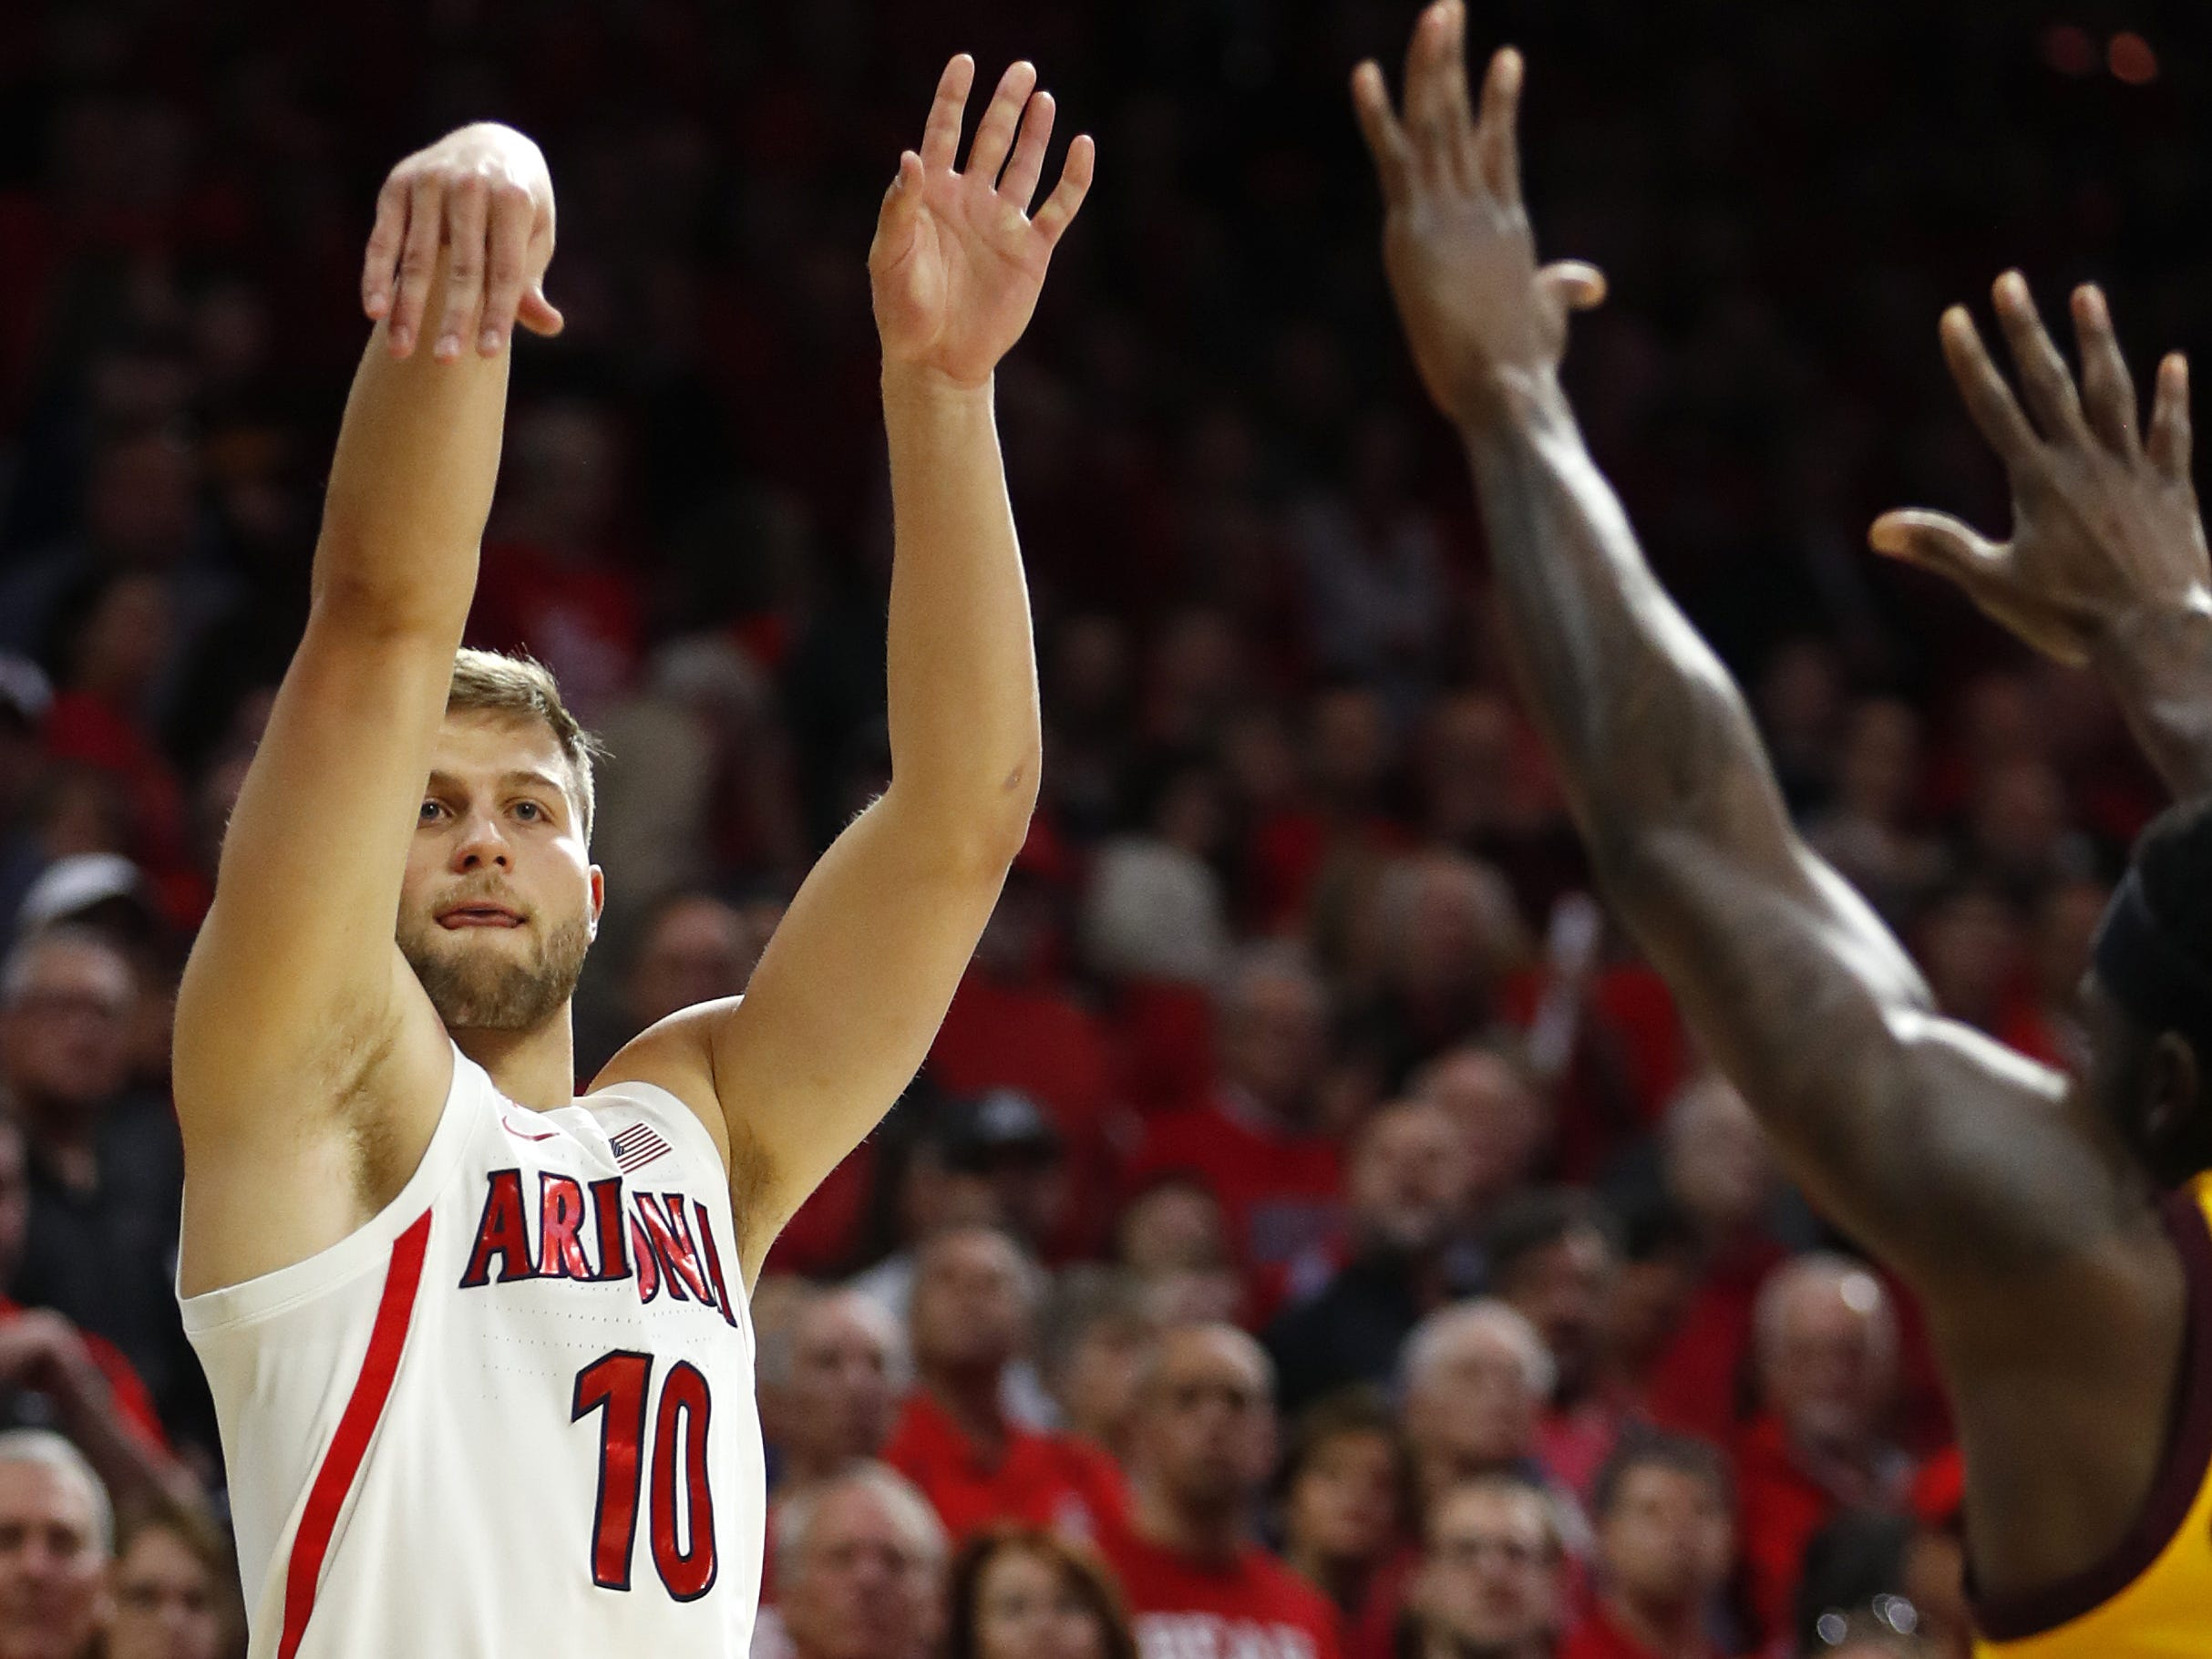 Arizona's Ryan Luther (10) makes a three pointer against ASU during the first half at the McKale Memorial Center in Tucson, Ariz. on March 9, 2019.